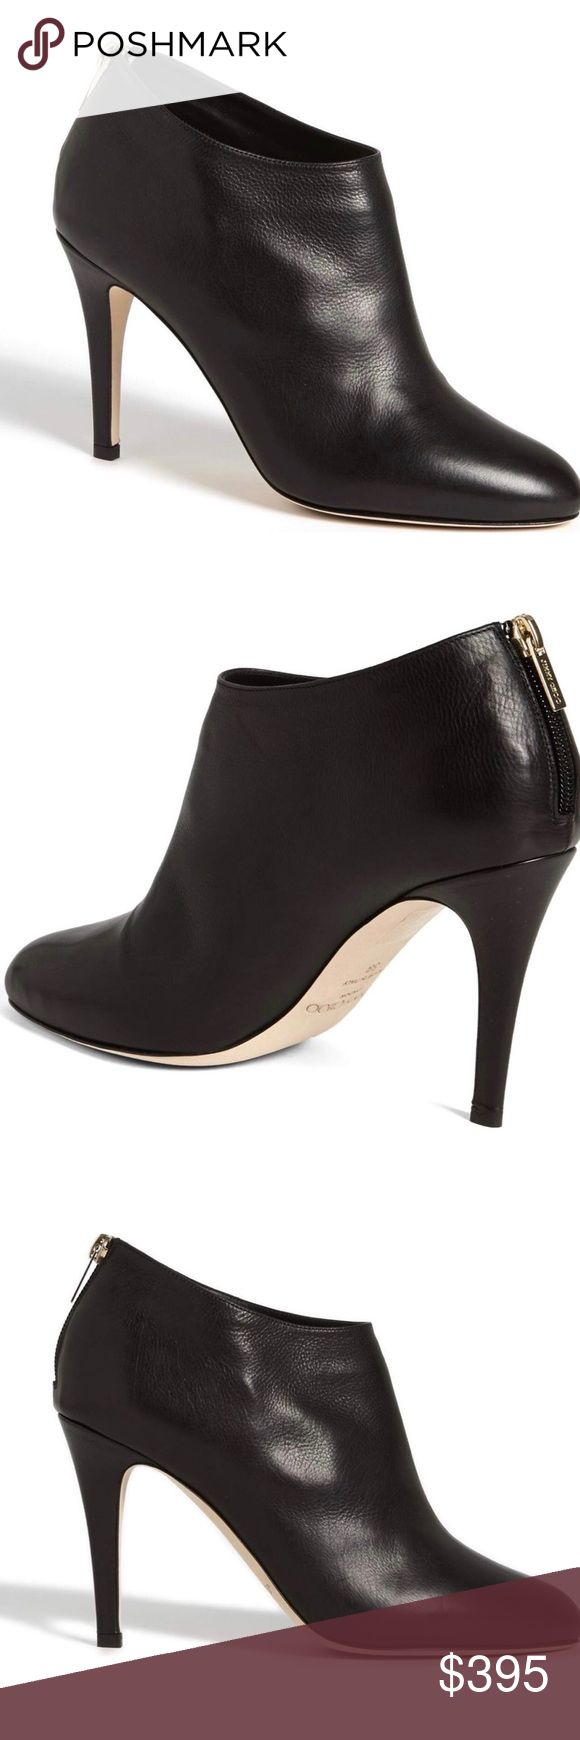 """Jimmy Choo Mendez Booties Excellent condition, once work once! Jimmy Choo Mendez booties in black leather, size 43.  3 1/2"""" heel height, 3 1/4"""" boot shaft. Back zip closure, leather upper and lining. AS SEEN ON MEGHAN MARKLE! Jimmy Choo Shoes Ankle Boots & Booties"""